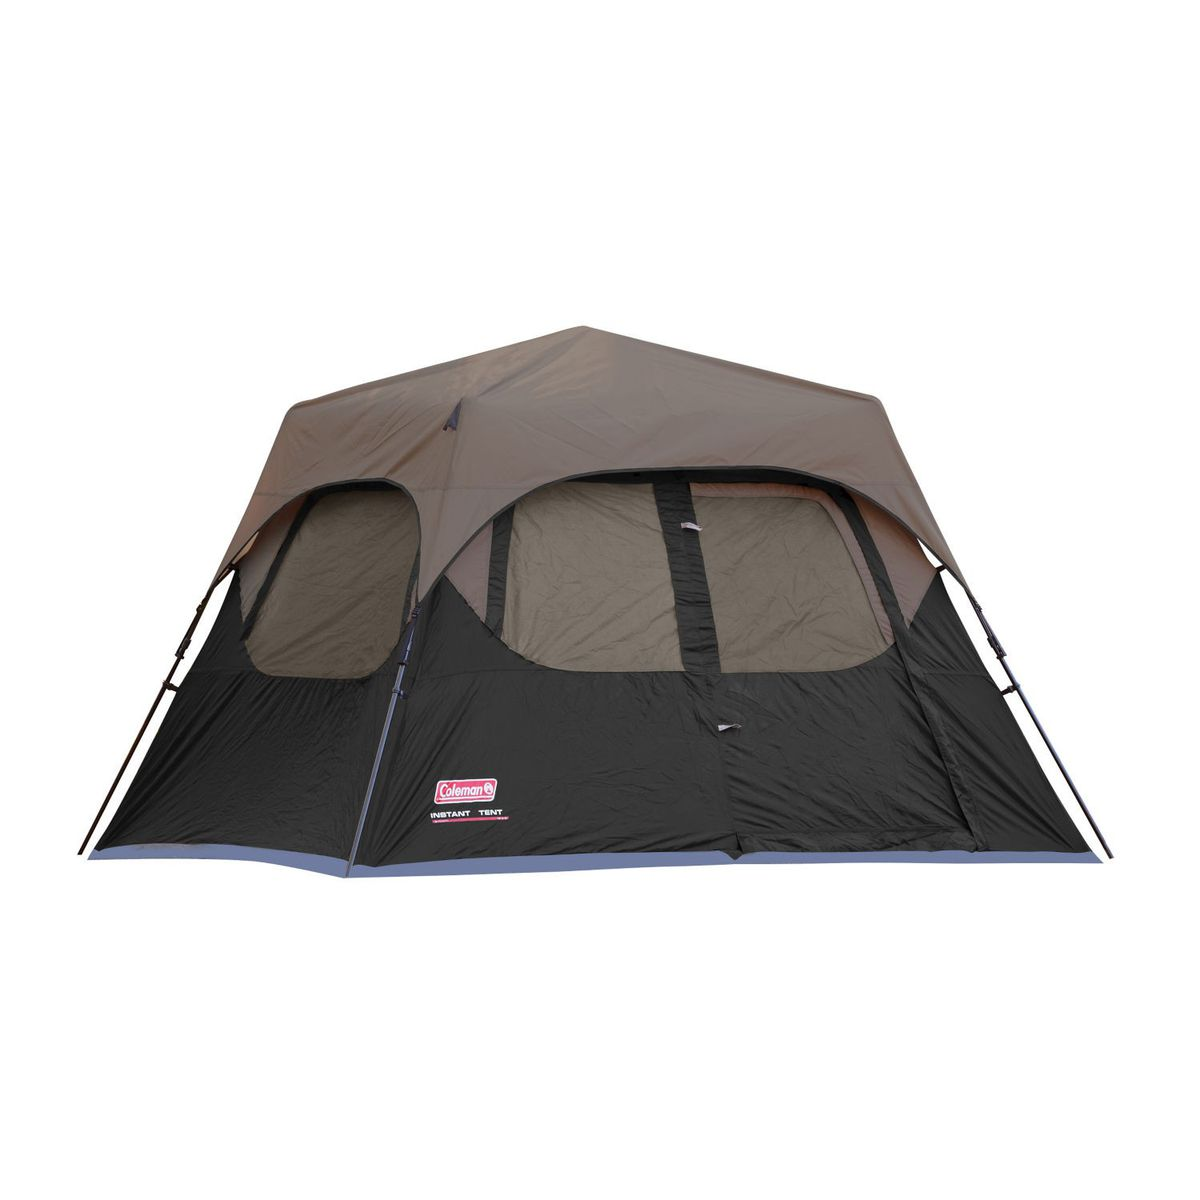 ... Coleman - Four Person Instant Tent Flysheet Accessory  sc 1 st  Takealot.com & Coleman - Four Person Instant Tent Flysheet Accessory | Buy Online ...